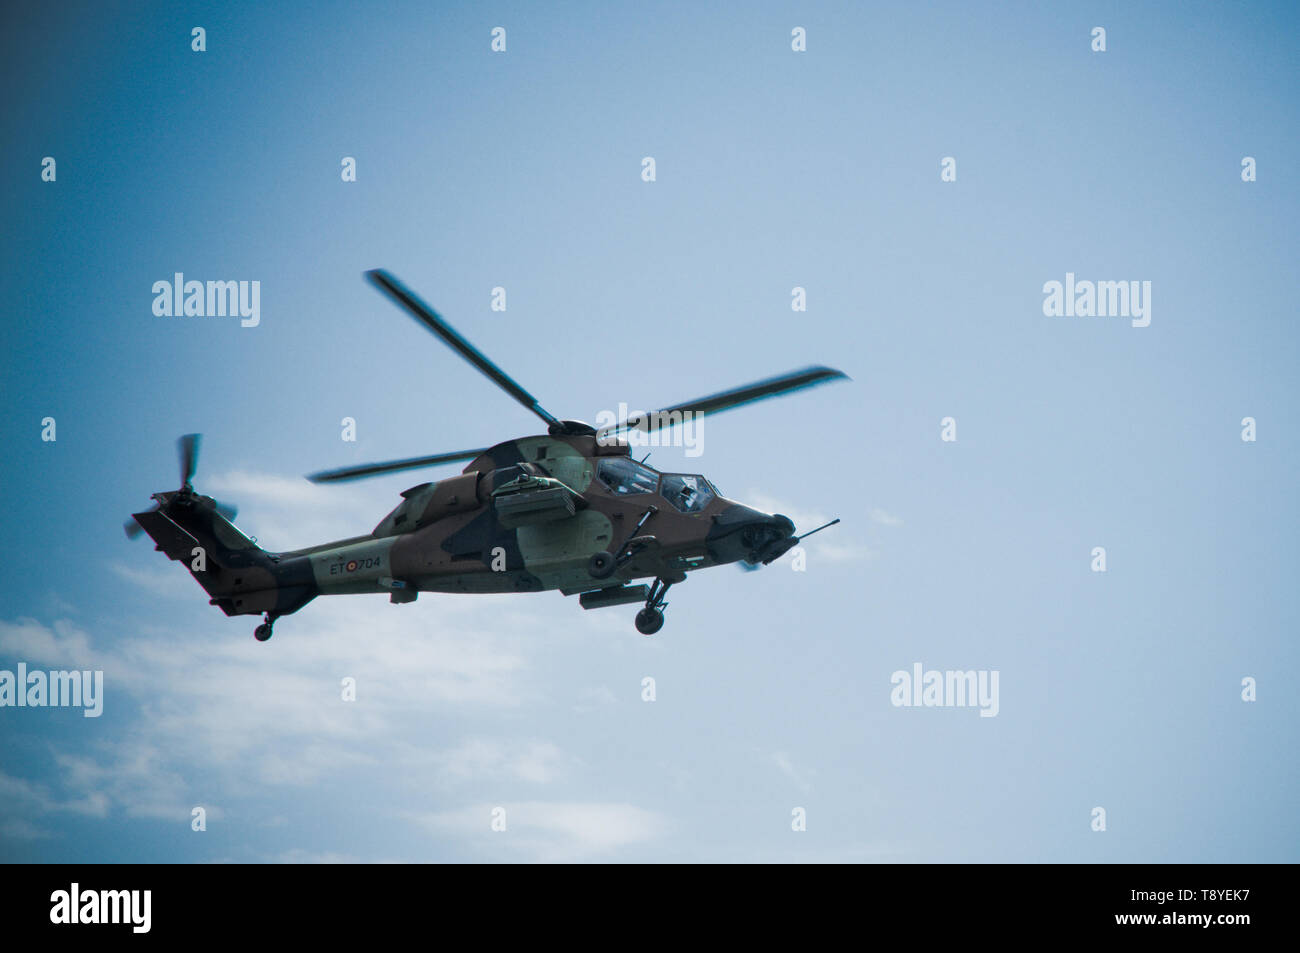 Military Helicopter: Eurocopter - Stock Image